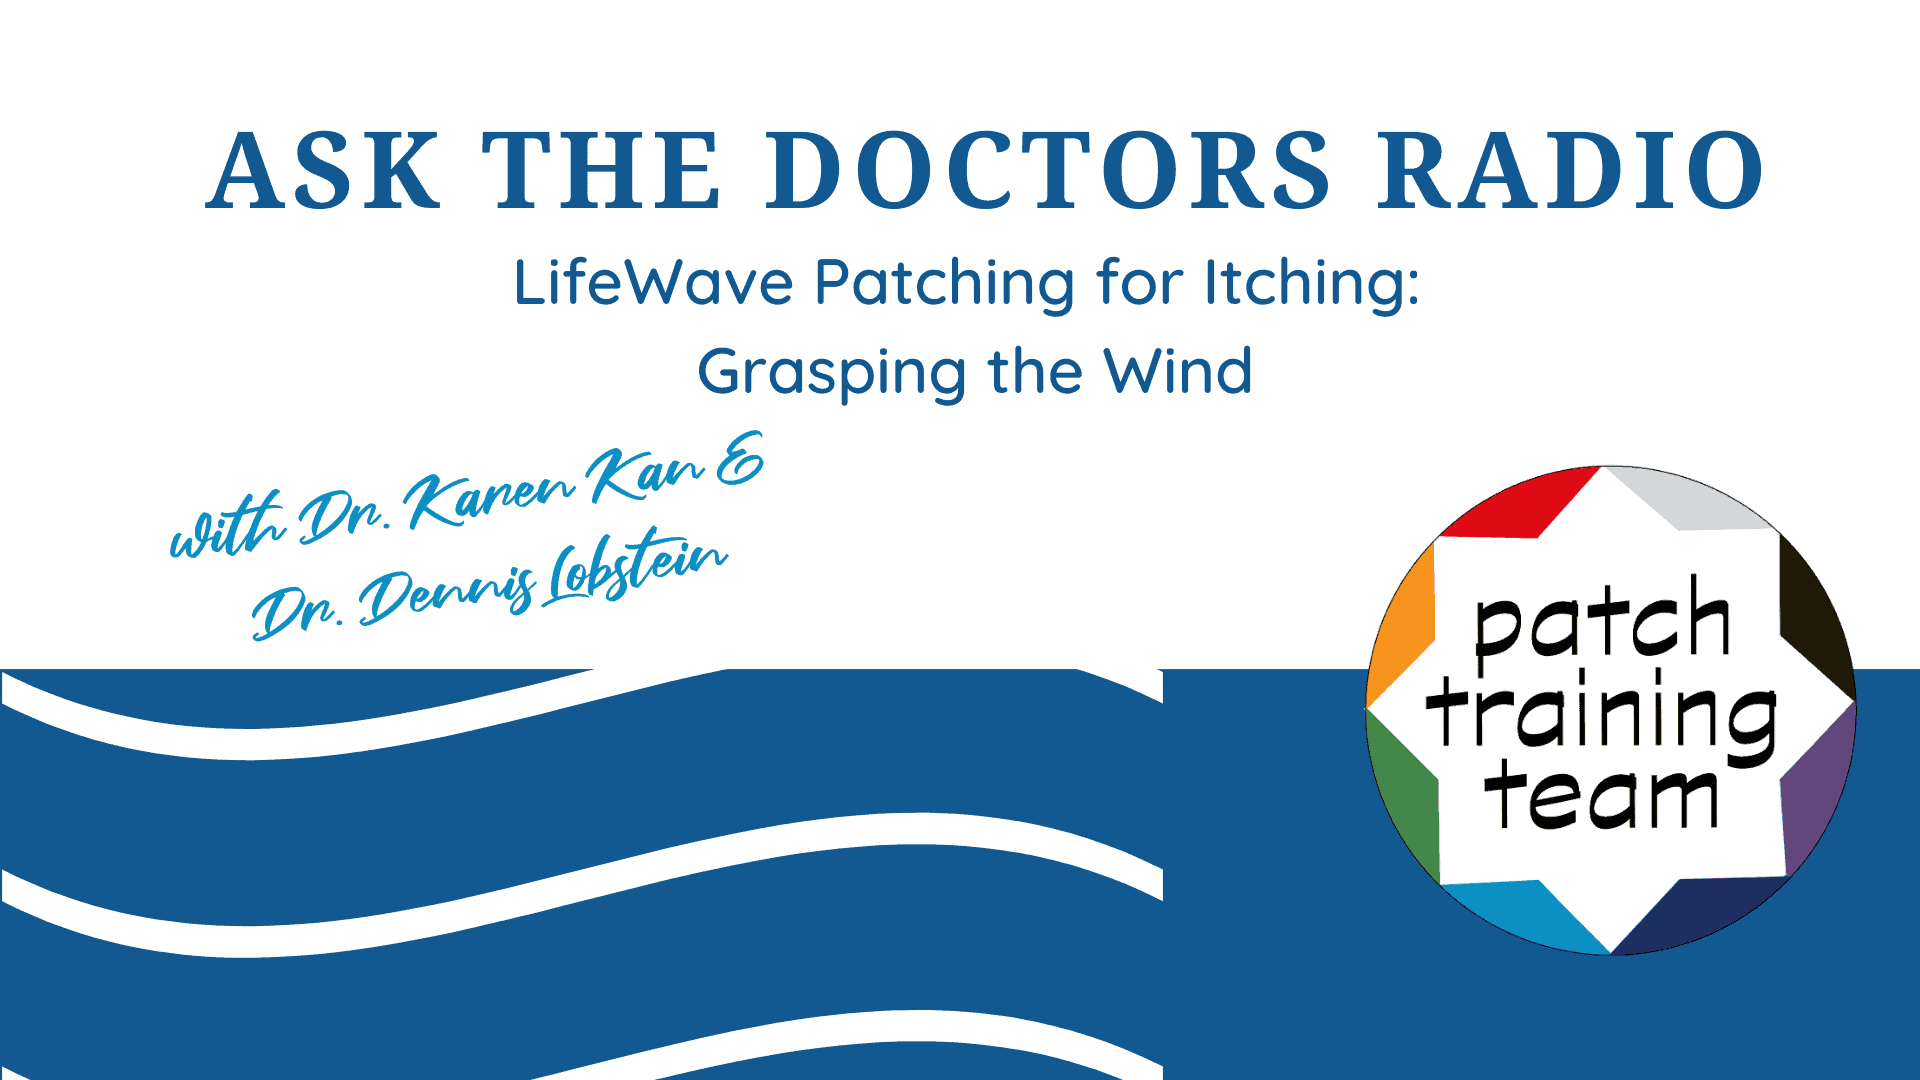 ask-the-doctors-radio-patch-training-team-patching-for-itching-grasping-the-wind